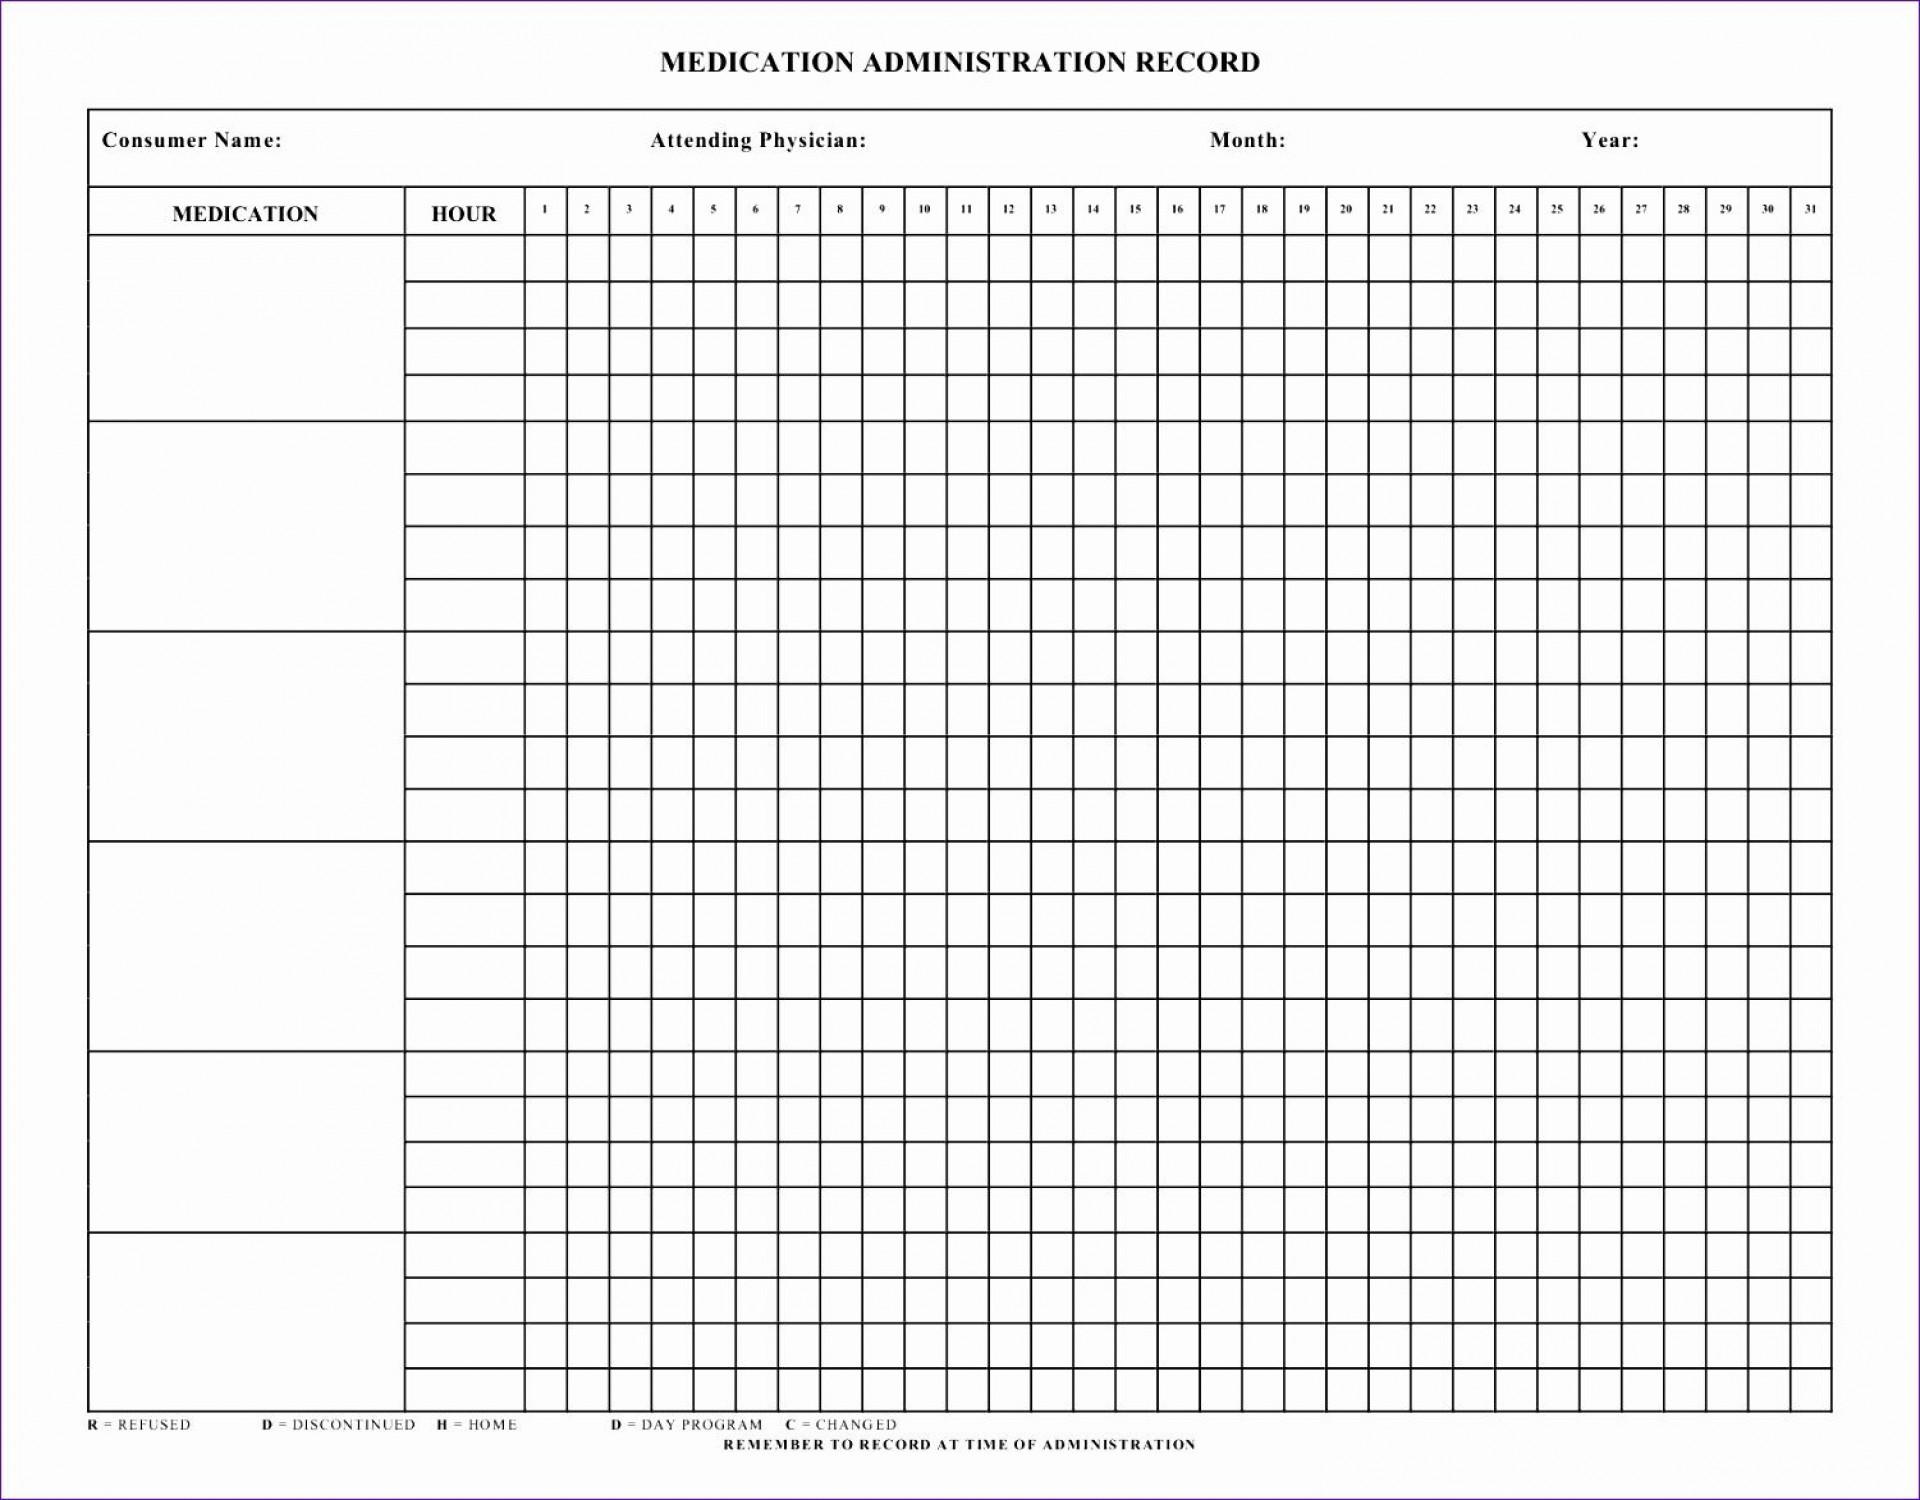 006 Breathtaking Medication Administration Record Template Excel Sample  Monthly1920